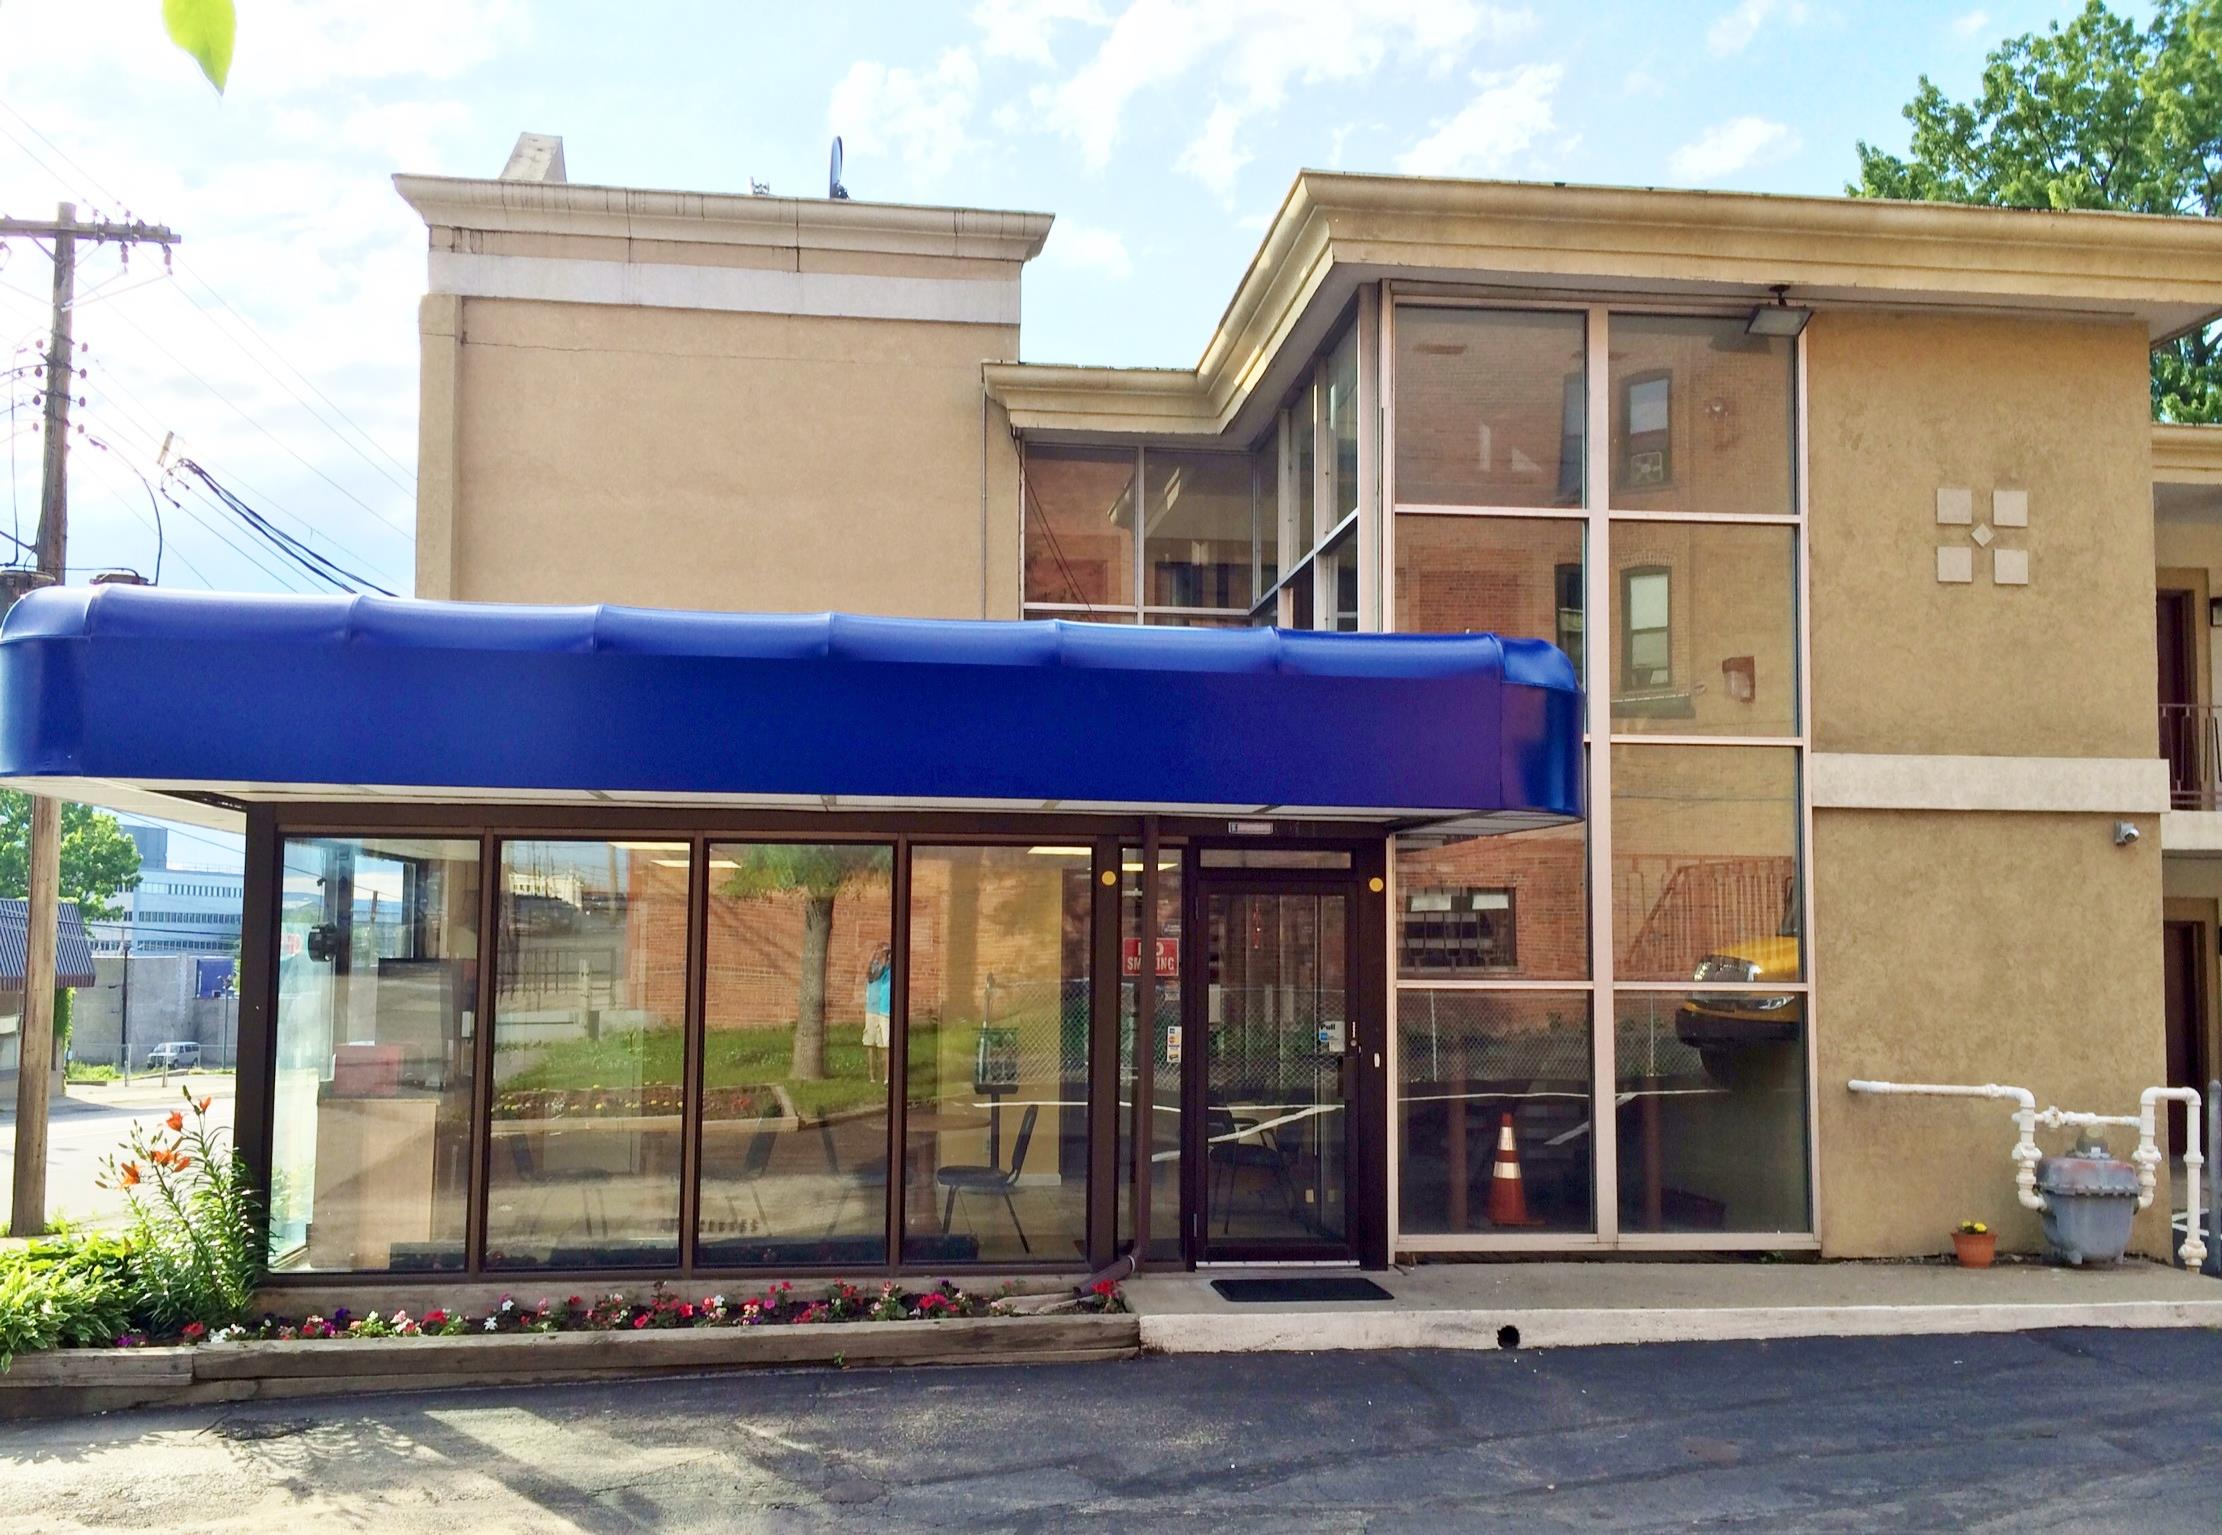 Americas Best Value Inn - Schenectady  Albany West In Schenectady  Ny 12307